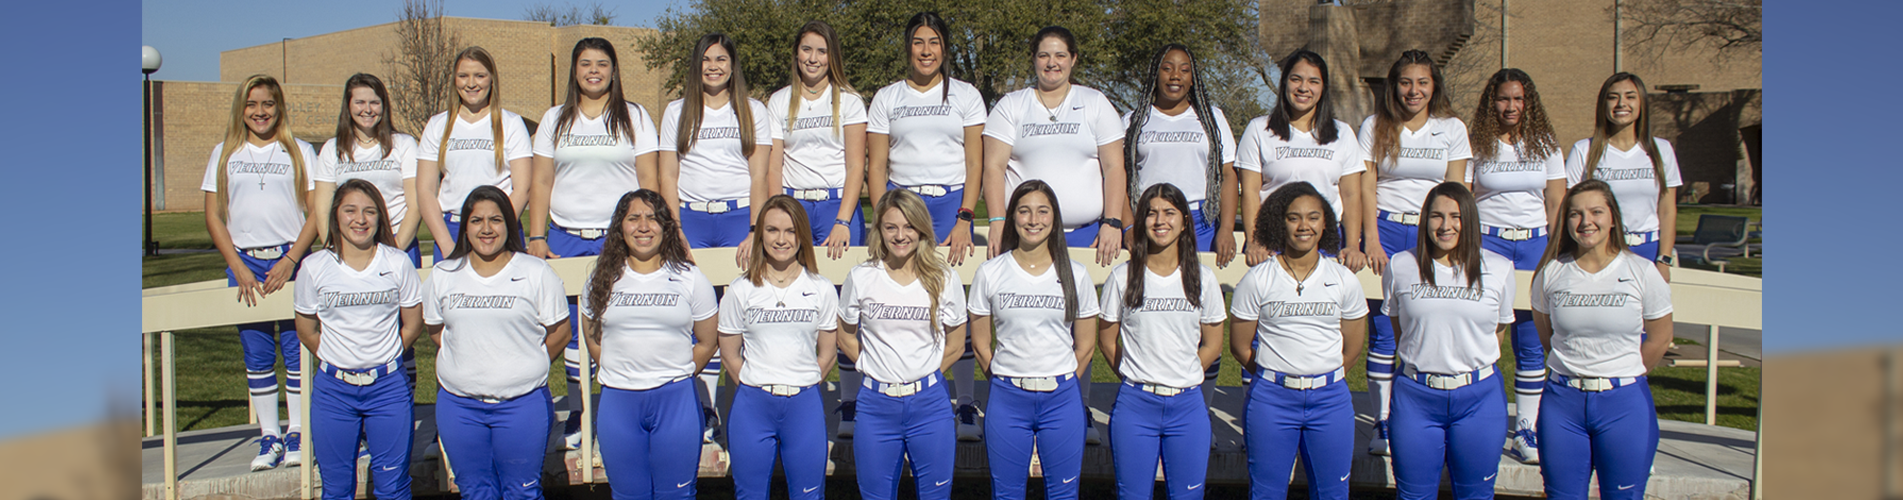 Softball Team Photo 2019